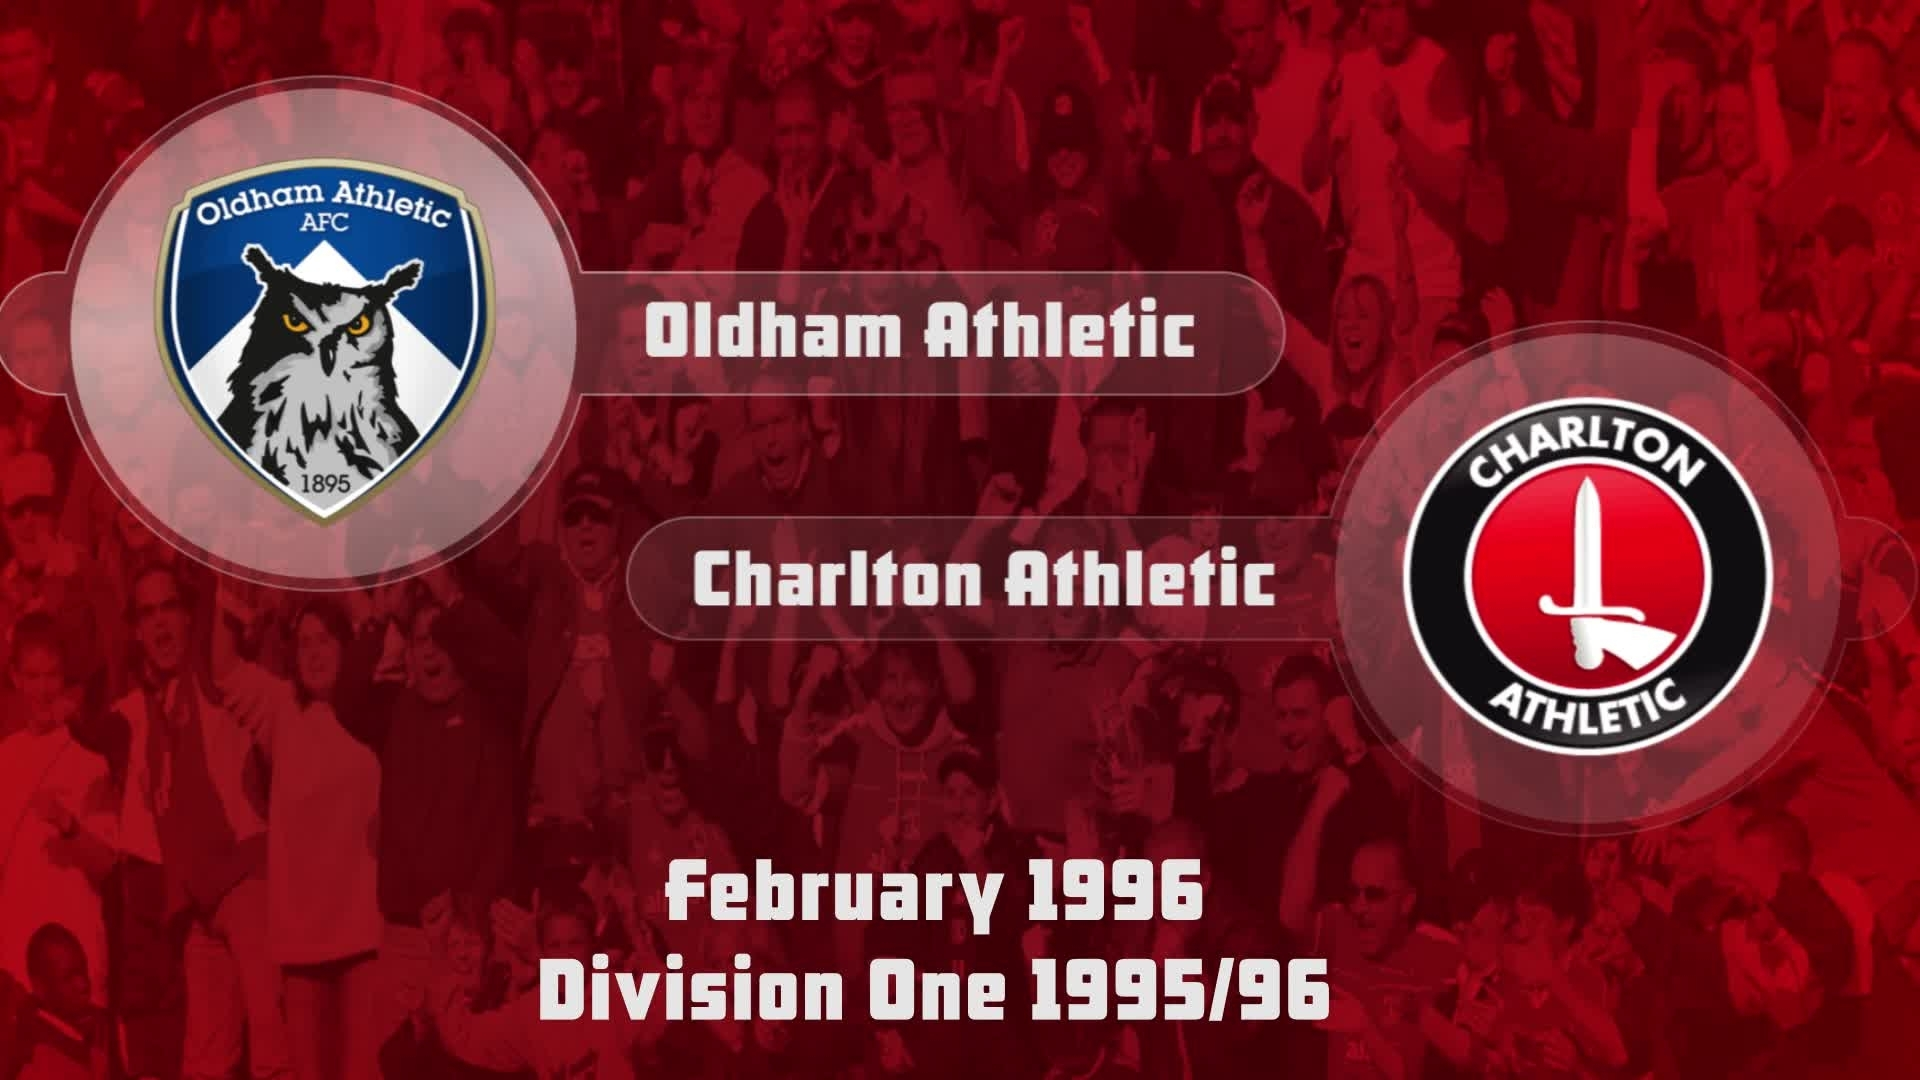 39 HIGHLIGHTS | Oldham 1 Charlton 1 (Feb 1996)